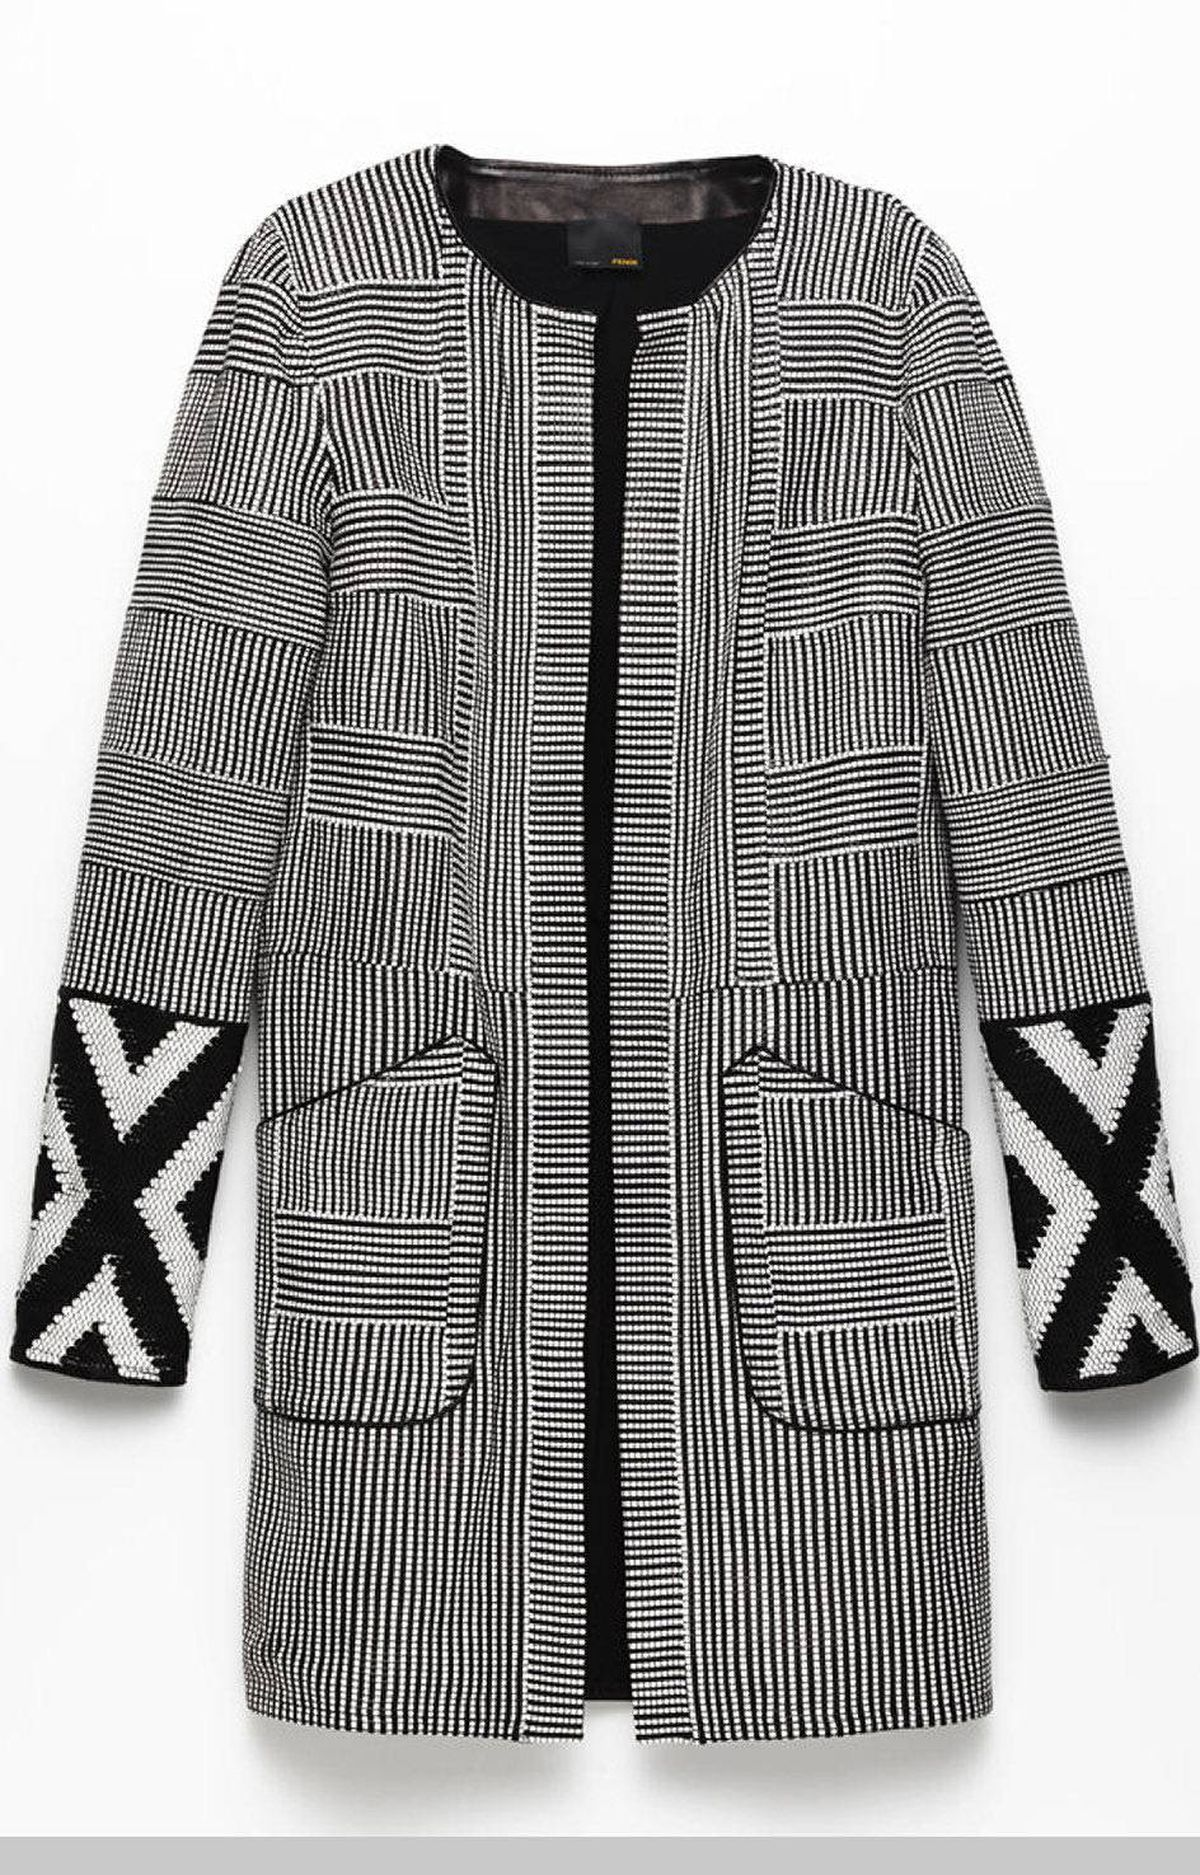 Woven leather jacket by Fendi, $7,995 at Holt Renfrew (www.holtrenfew.com)